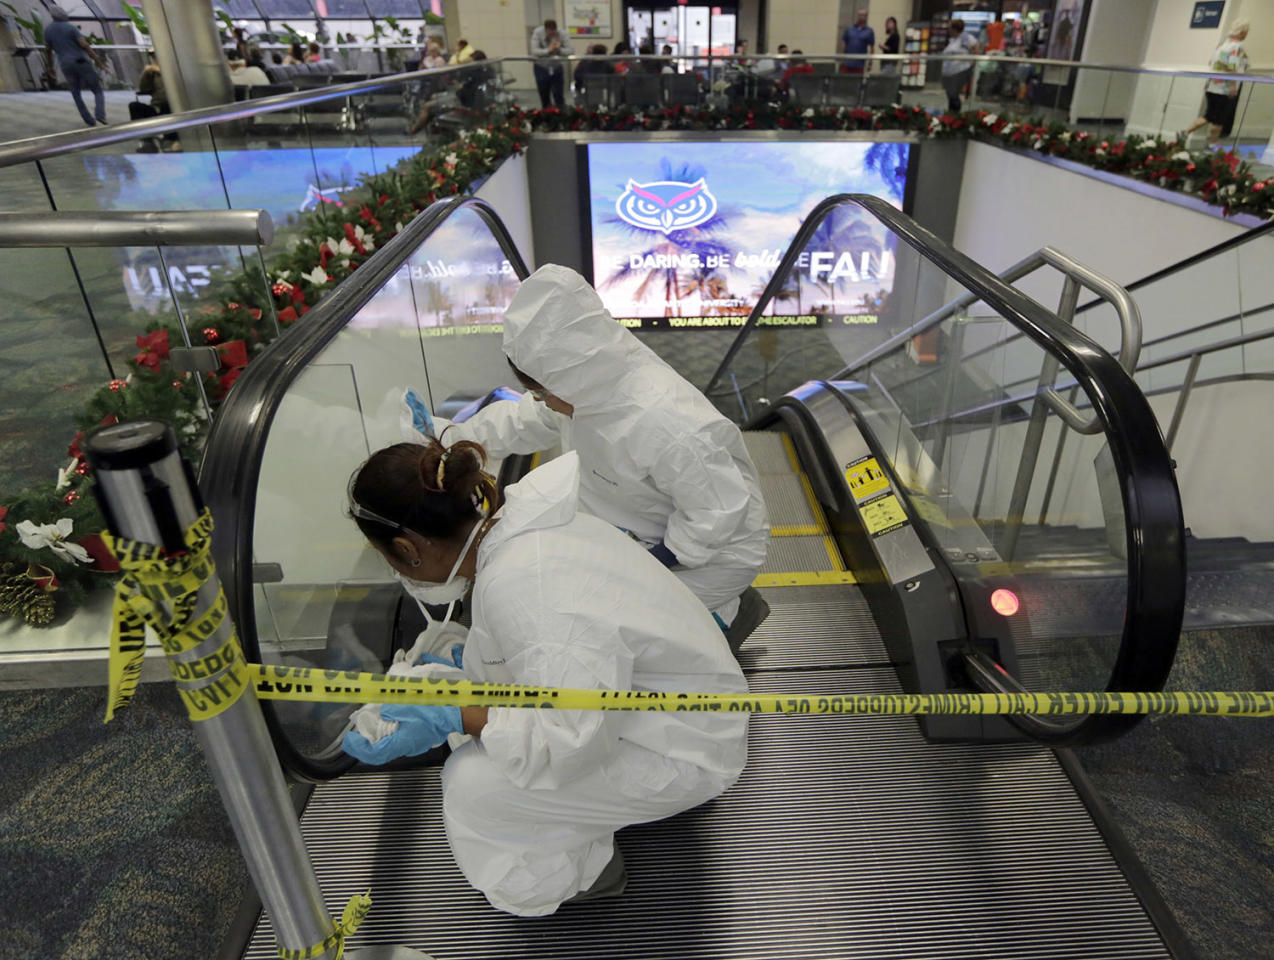 <p>Workers clean the escalators that lead to the baggage claim area at terminal 2 at the Fort Lauderdale-Hollywood International Airport in Fort Lauderdale, Fla., on Saturday, Jan. 7, 2017. (AP Photo/Alan Diaz) </p>